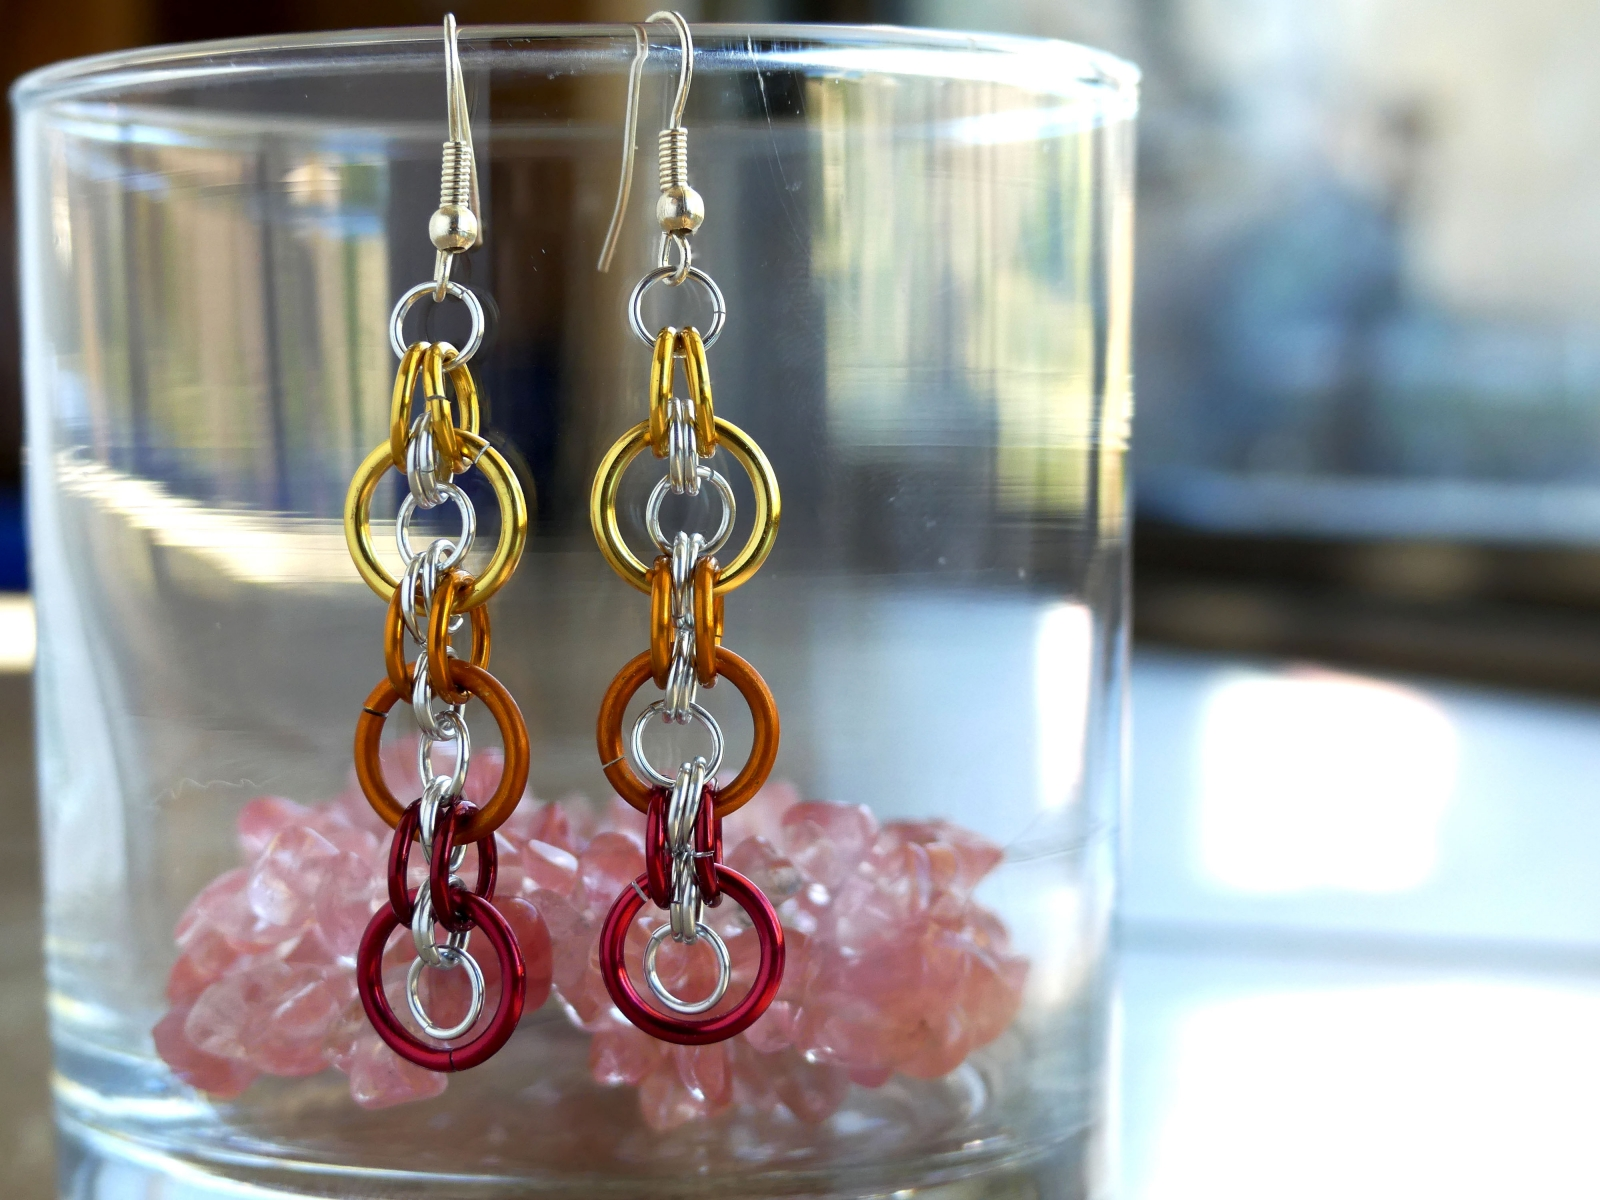 Bullseye Earrings - Fire